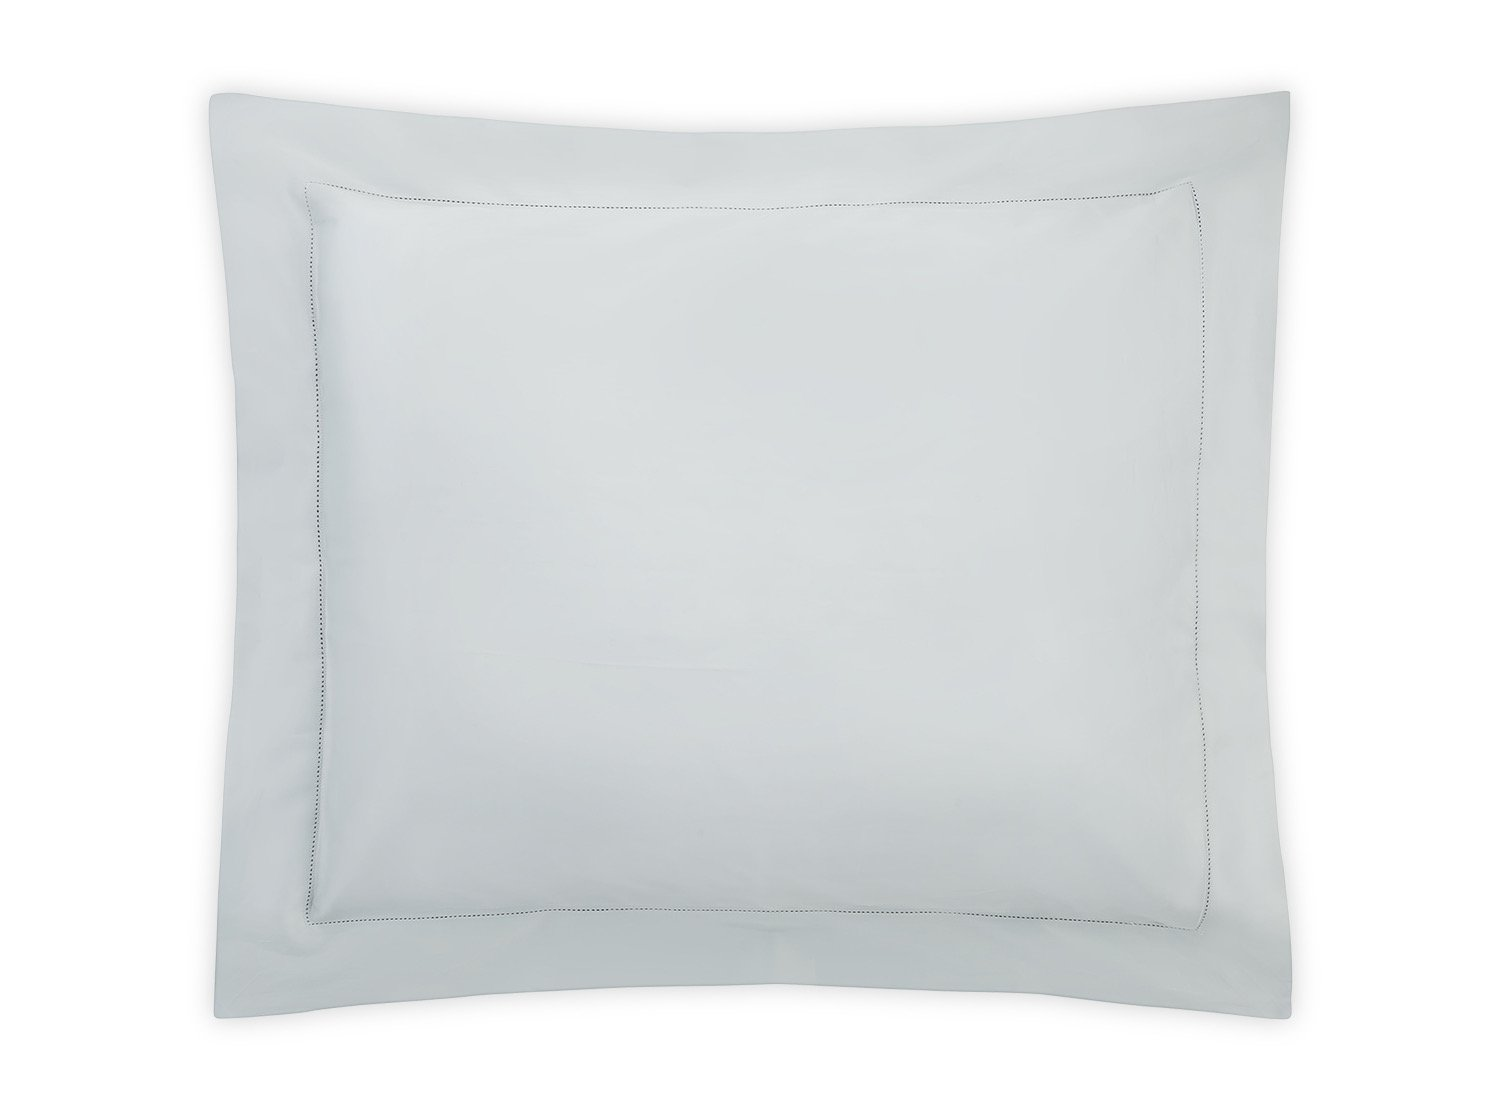 Nocturne Hemstitch Pool Sham | Matouk Sateen Bedding